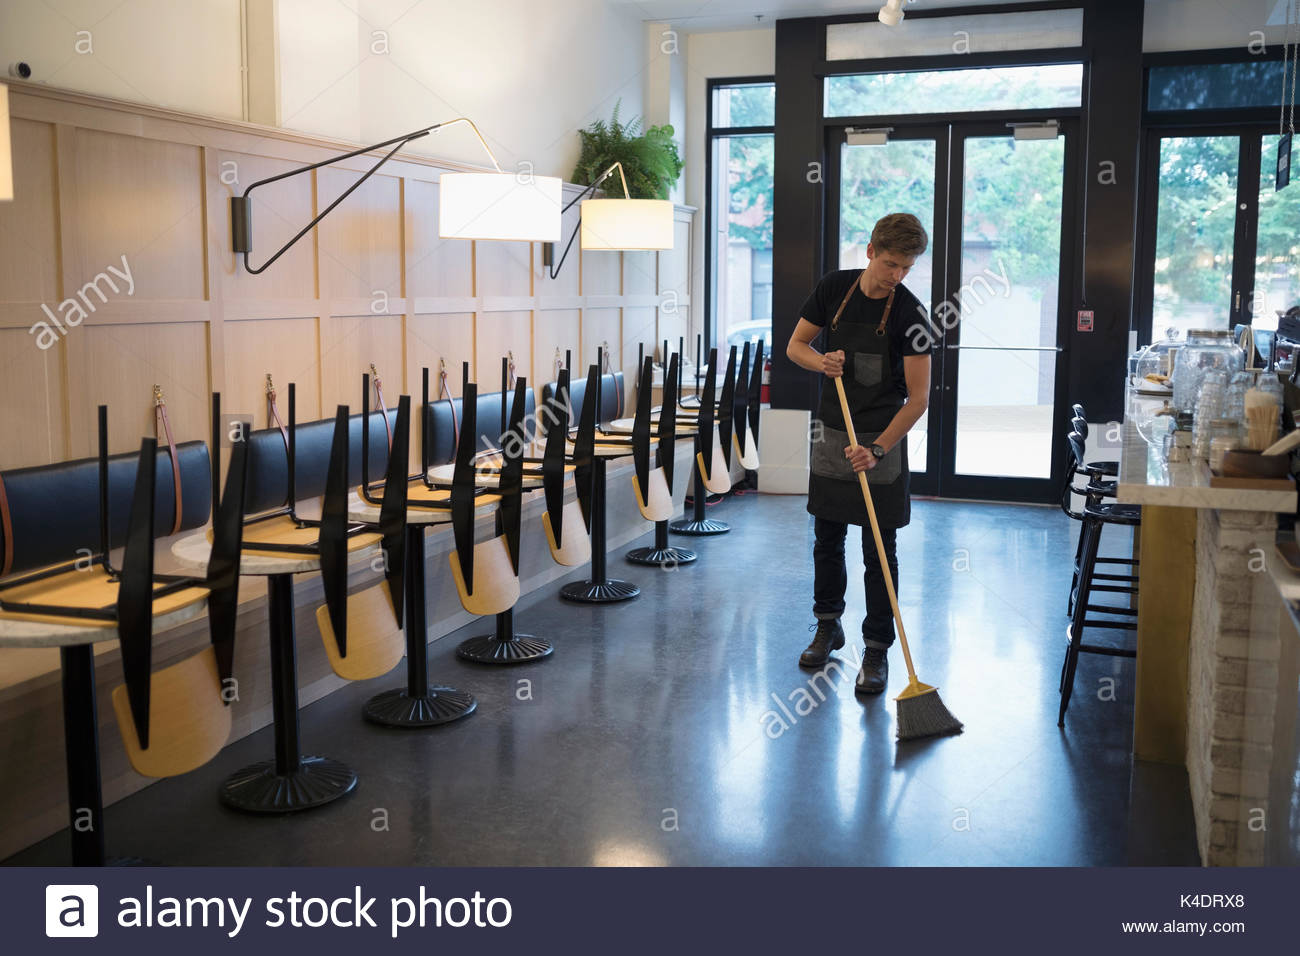 Male worker sweeping cafe with broom - Stock Image